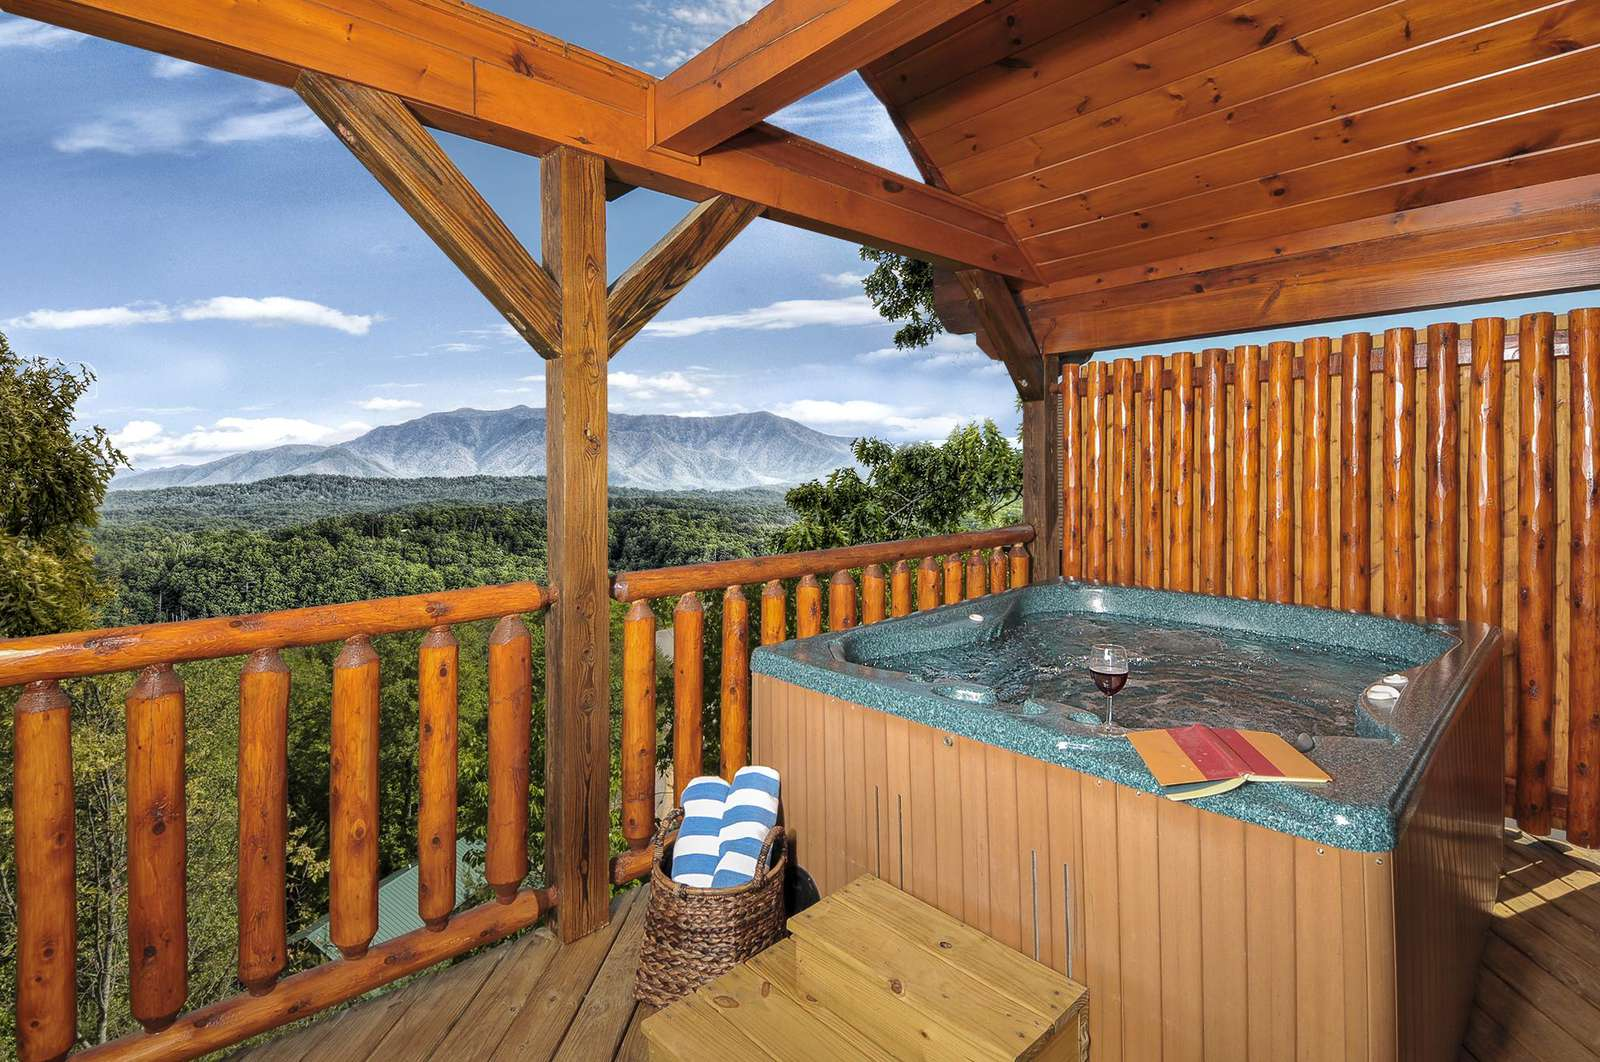 Hot Tub overlooking Amazing Mountain Views